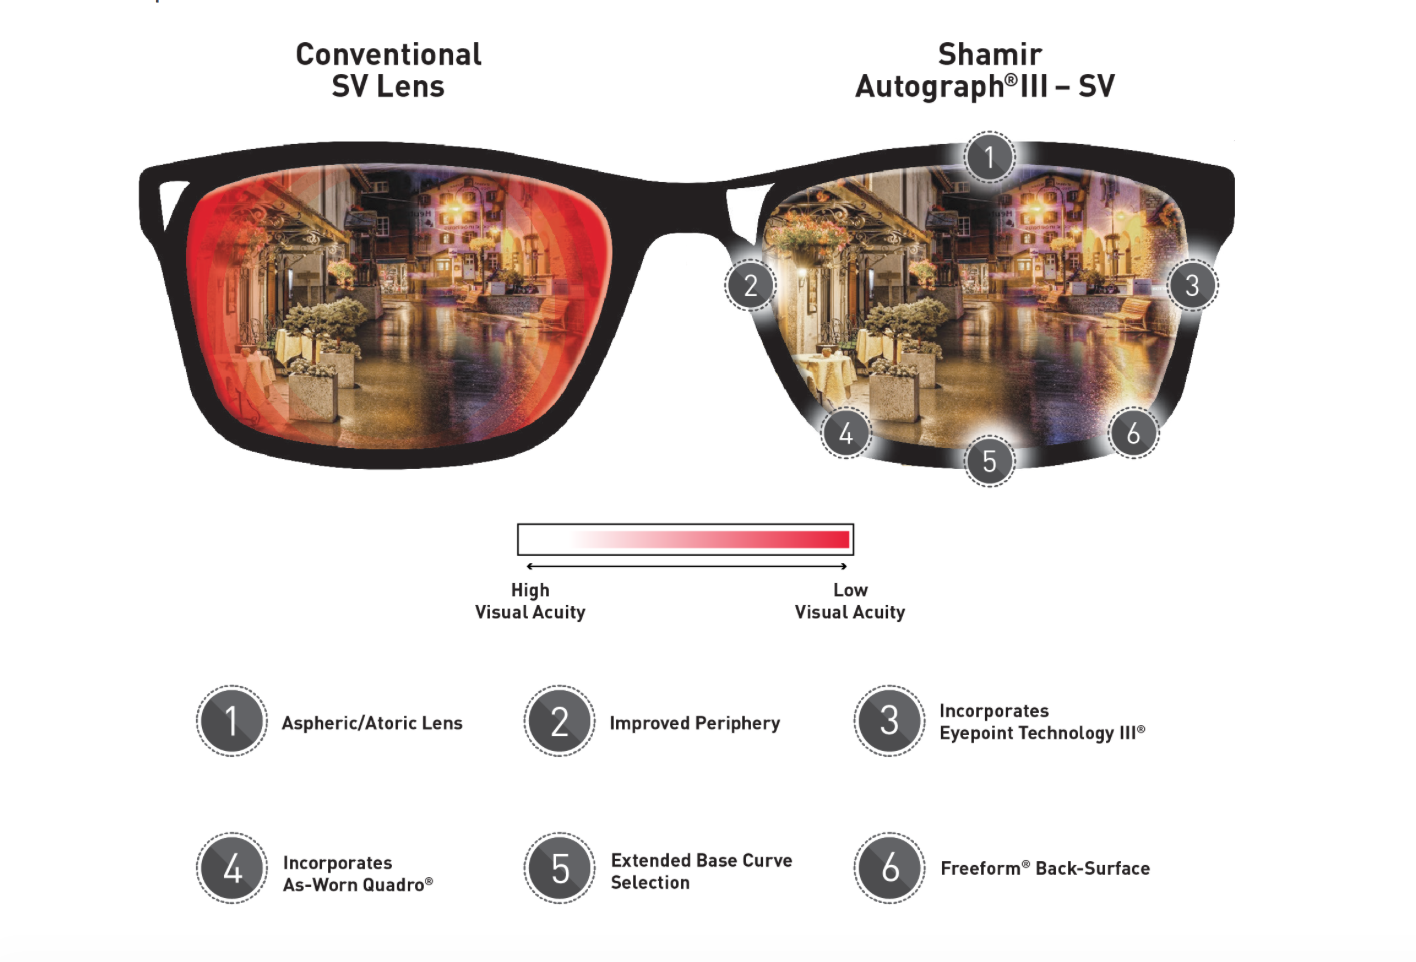 3b83ef3e29a3 ... world images and support the design of lenses that provide an improved  viewing experience for all patients regardless of lens power and frame  choice.